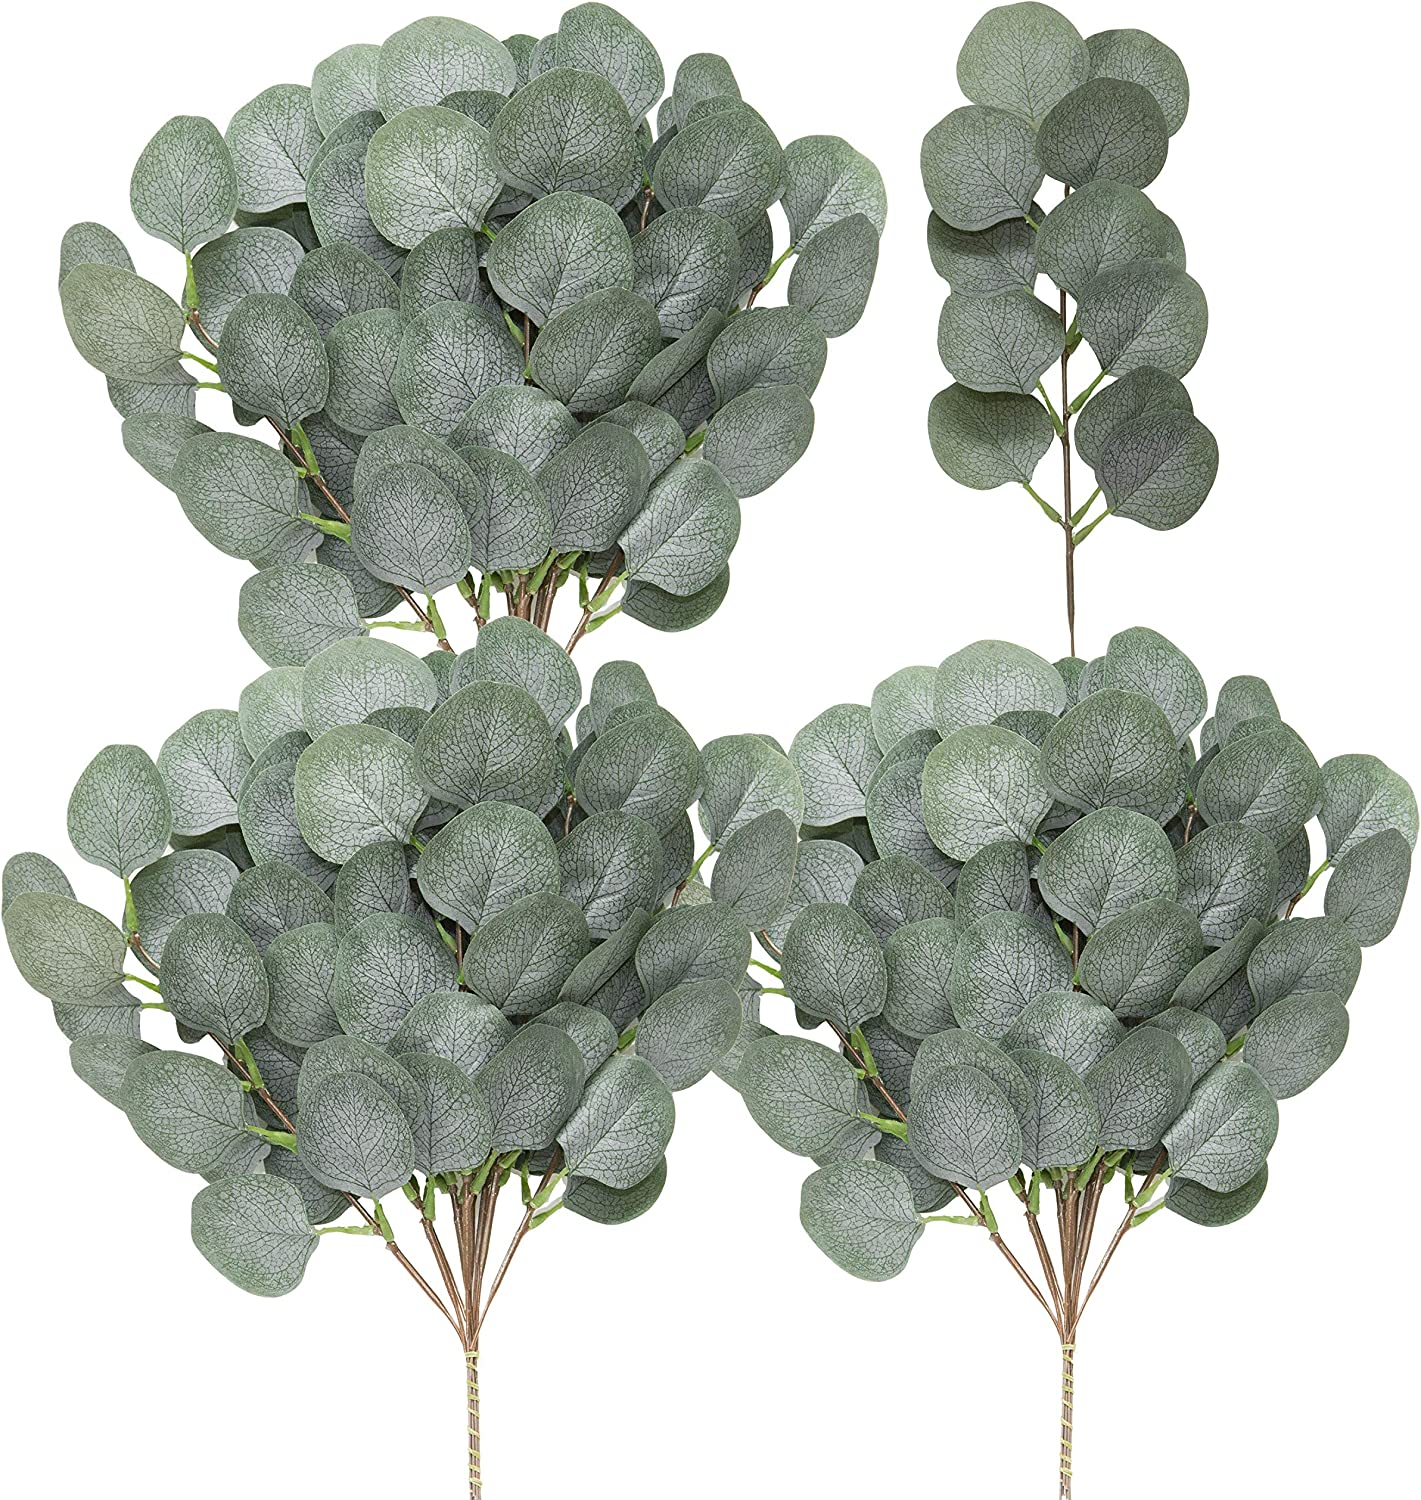 SUUKI Fake Eucalyptus Leaves Stems Artificial Greenery Branches 10Pcs Silver Dollar Dried Plants Silk Flowers Garland Bulk for Home Farmhouse Indoor Wedding Party Holiday Vase Decor (Grey Green)